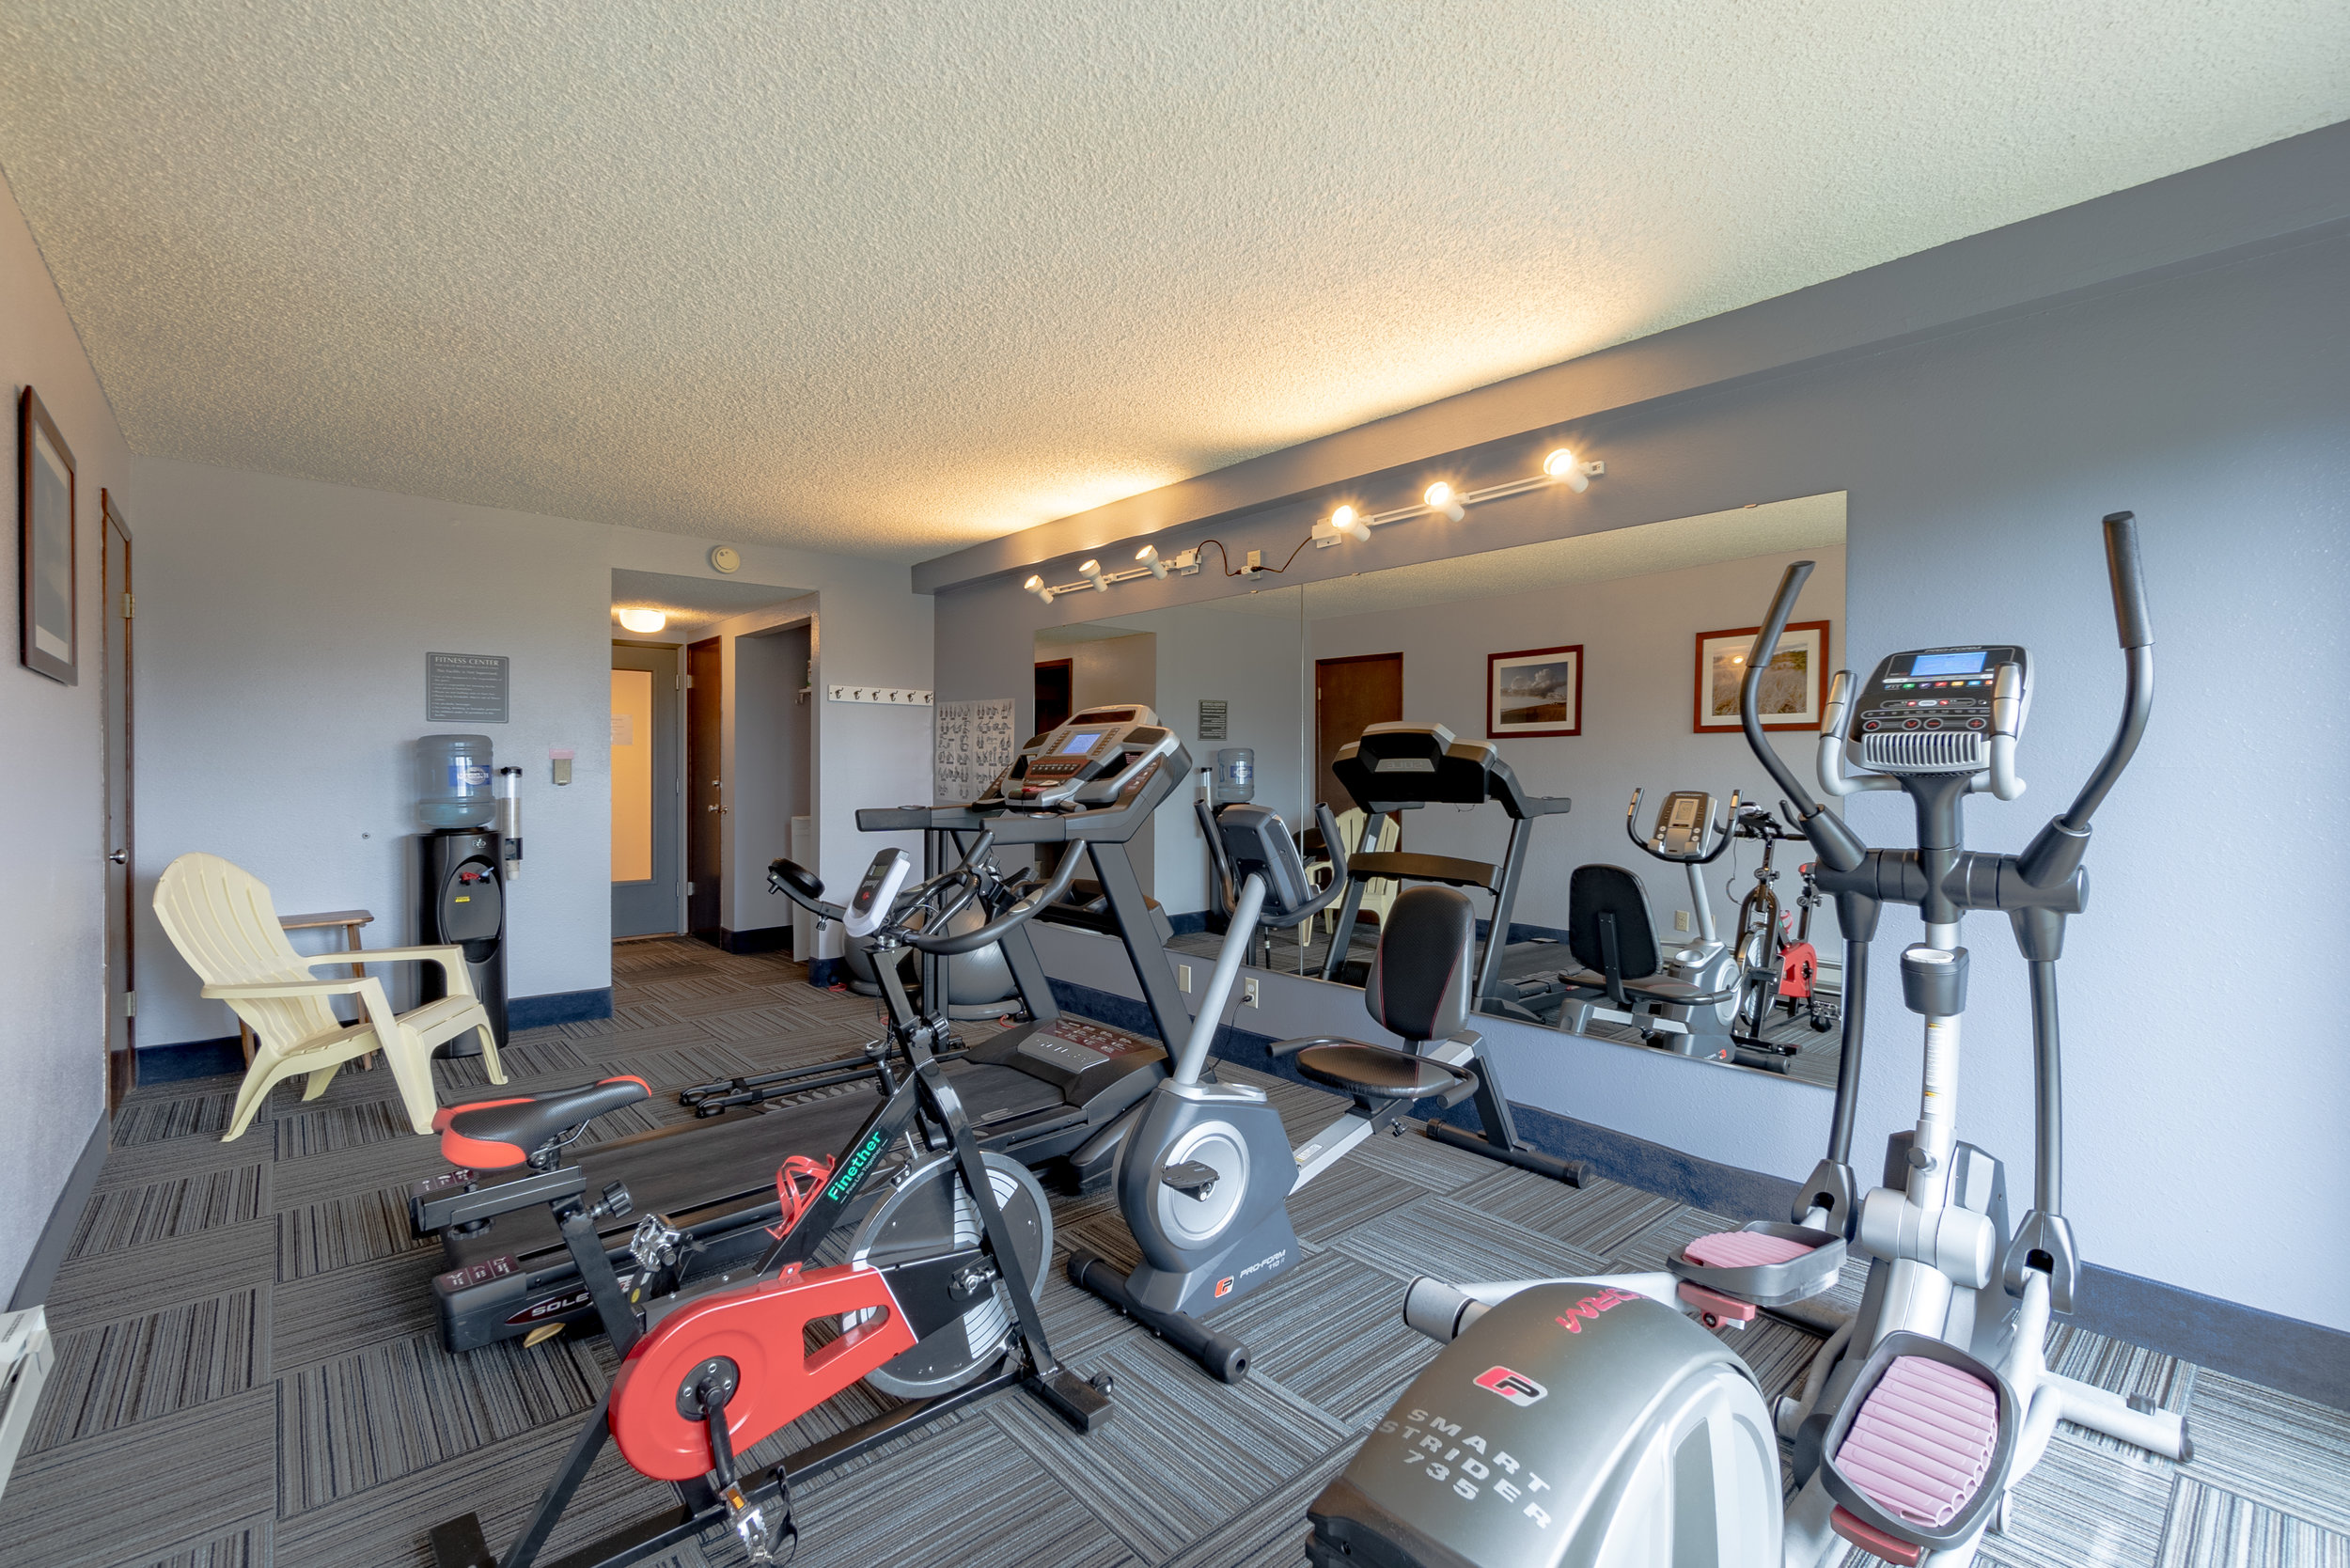 Fitness Center - Open 24 hours/day!